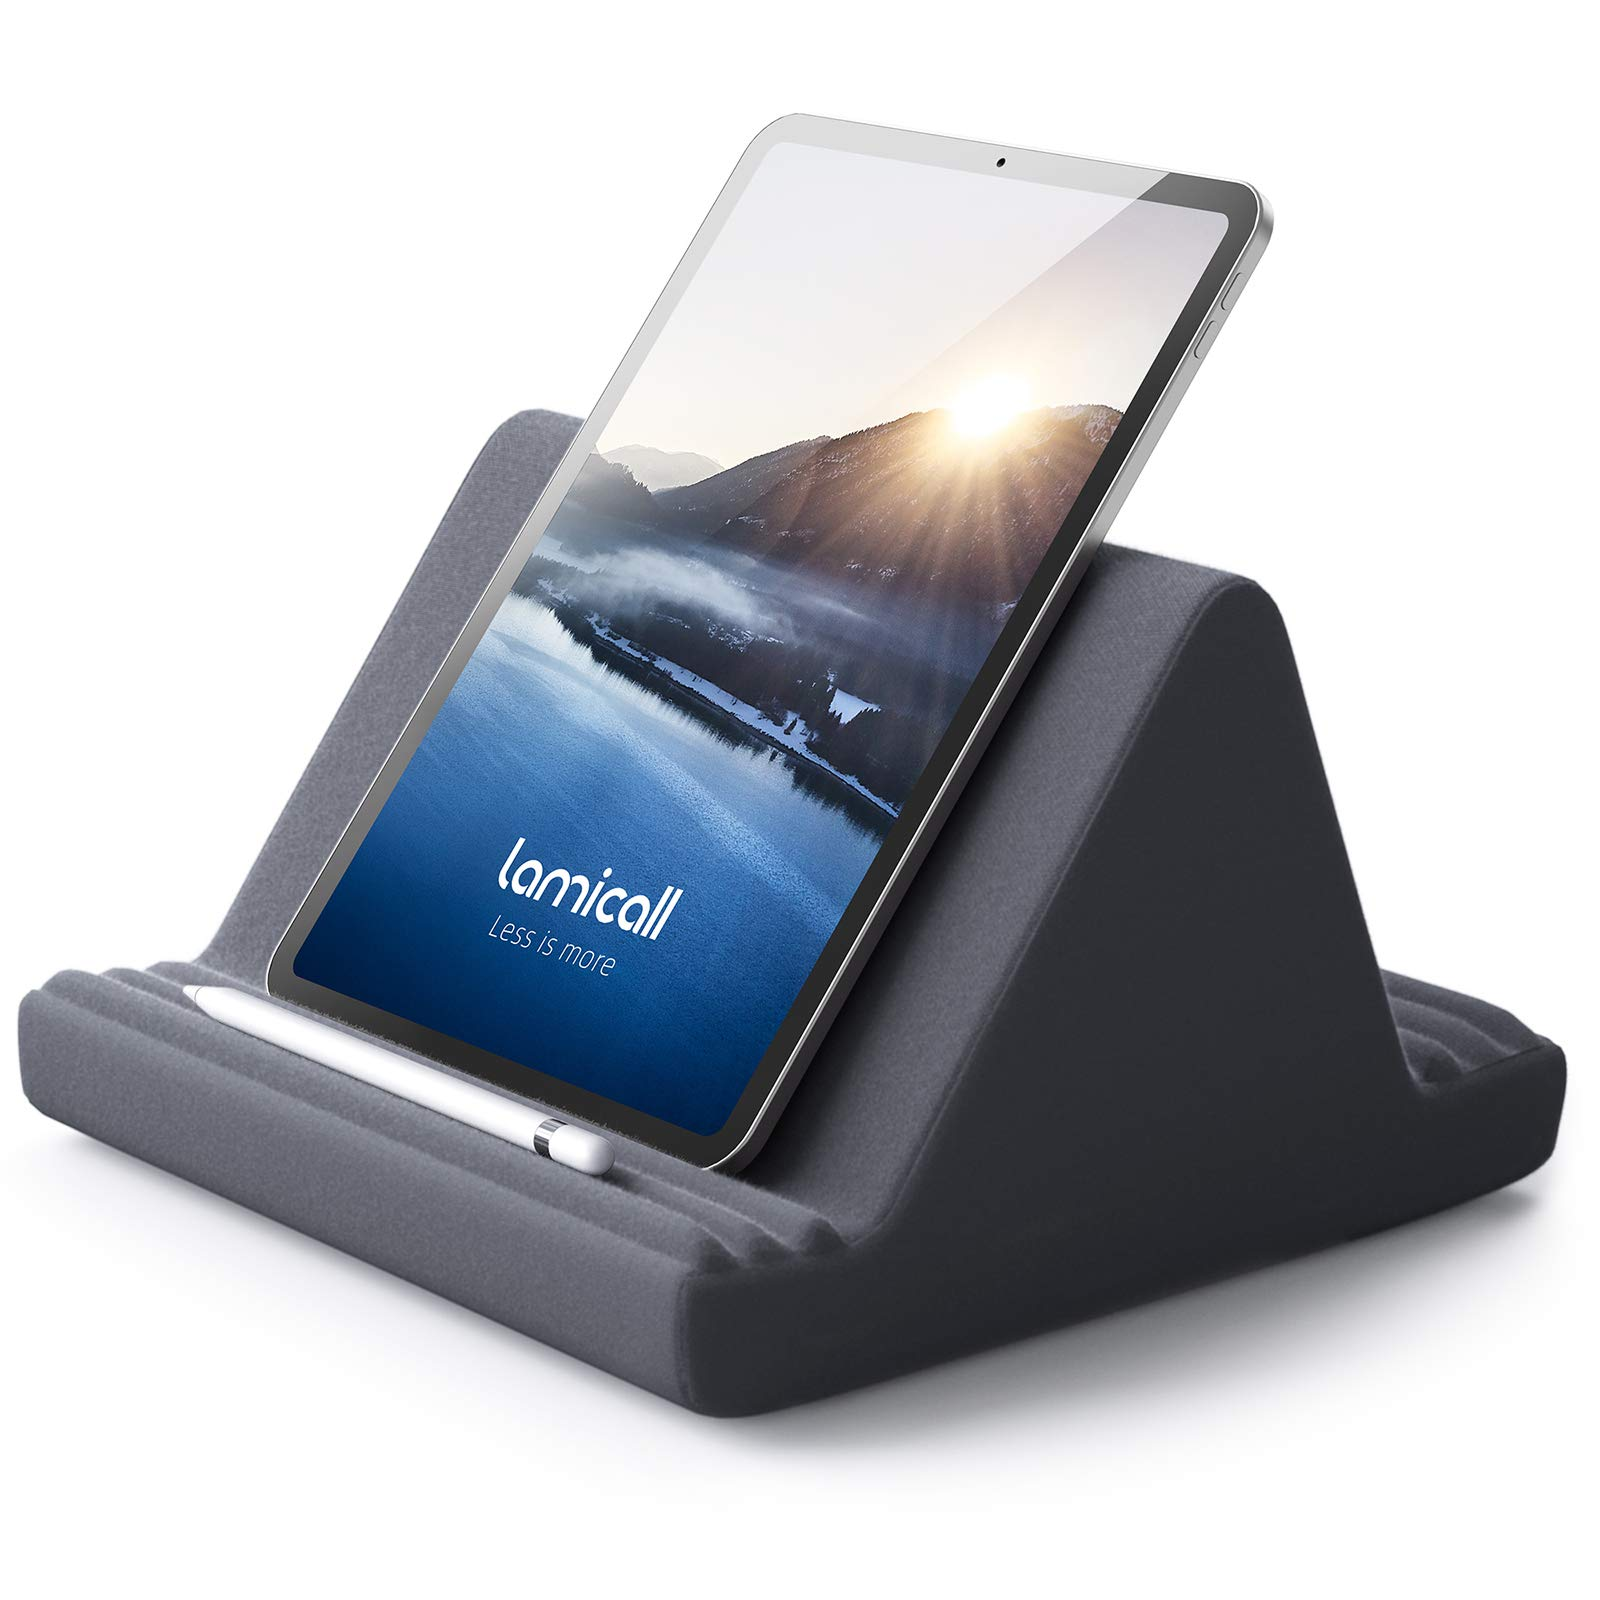 Knock 15% off a tablet pillow stand